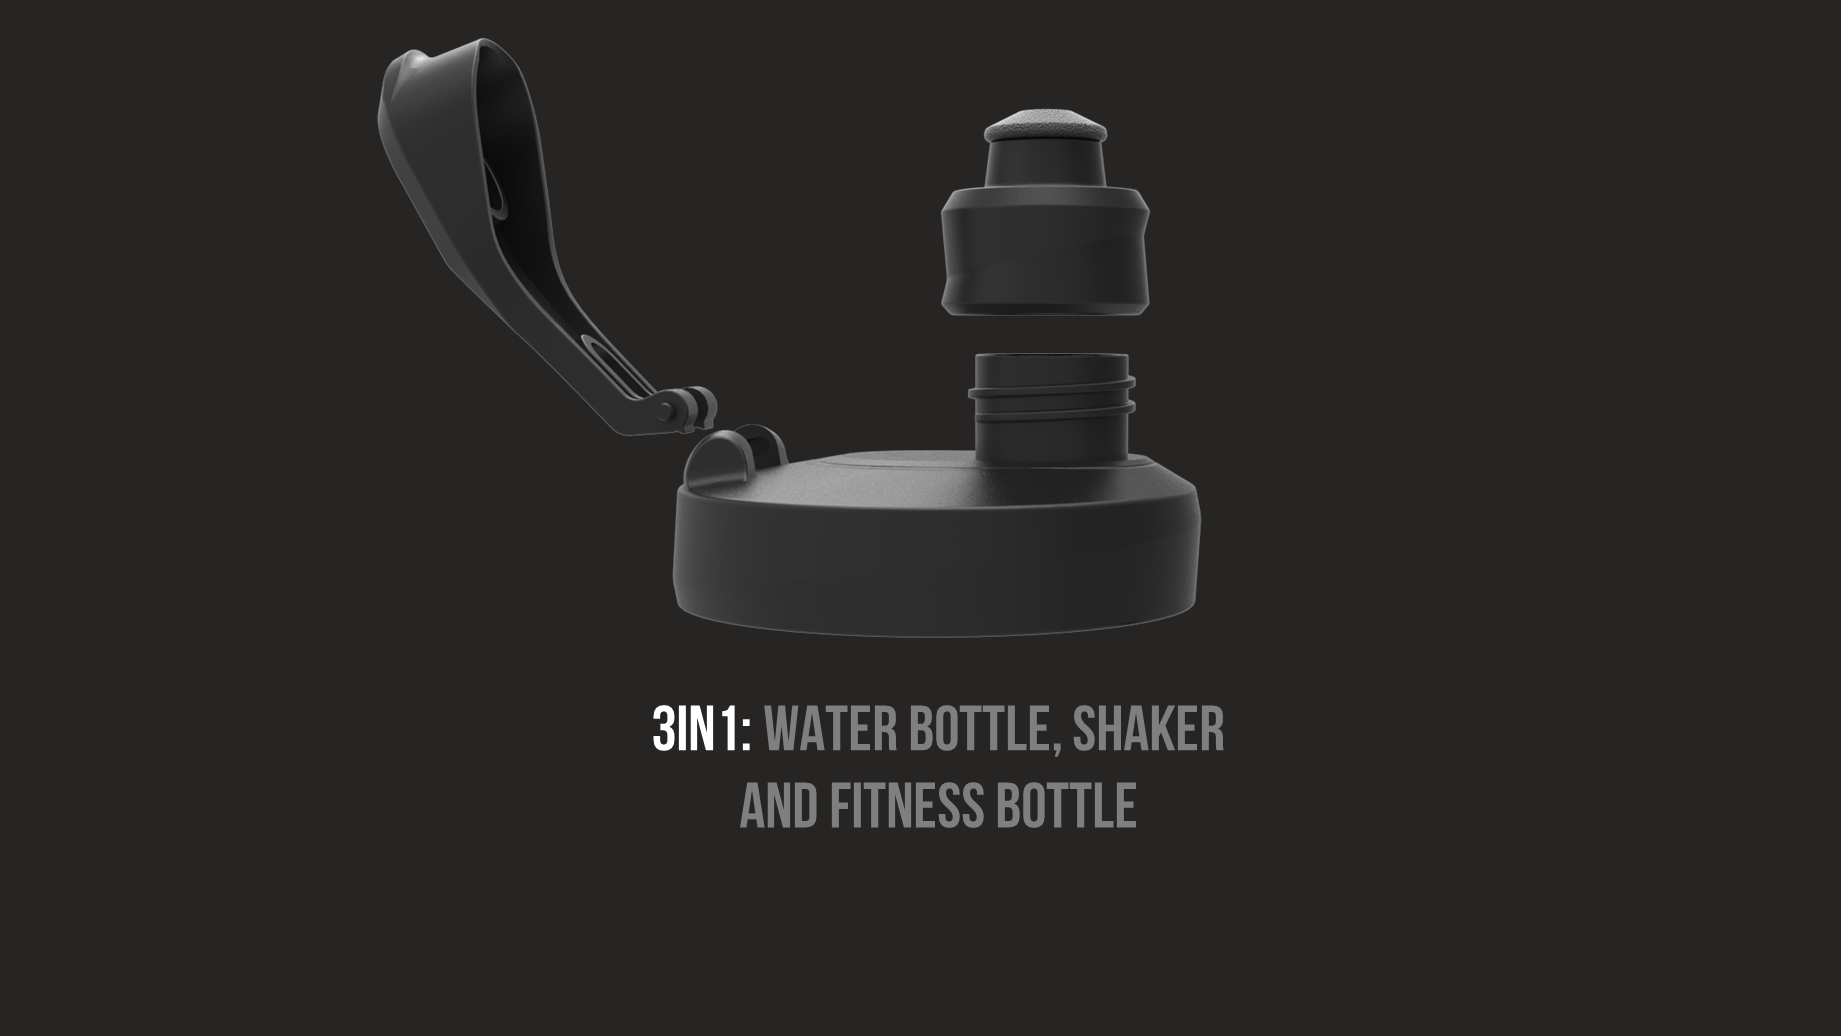 INK SMART SHAKER - AVAILABLE SOON